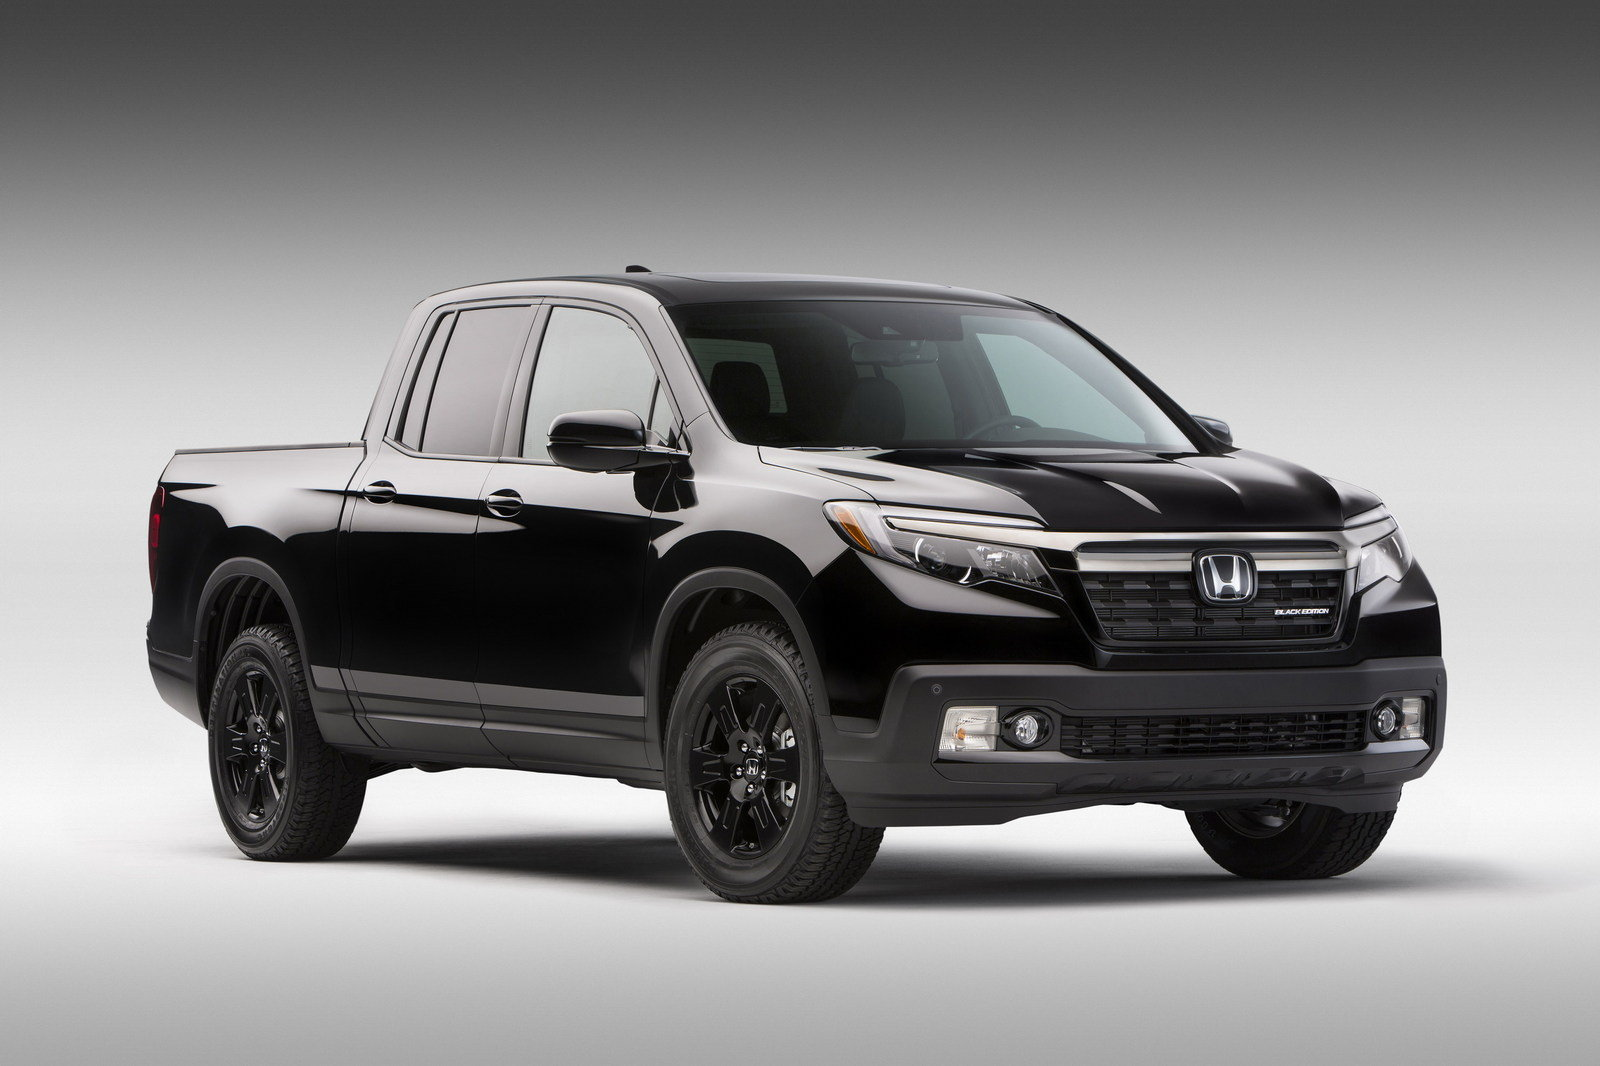 2017 honda ridgeline picture 661628 truck review top speed. Black Bedroom Furniture Sets. Home Design Ideas